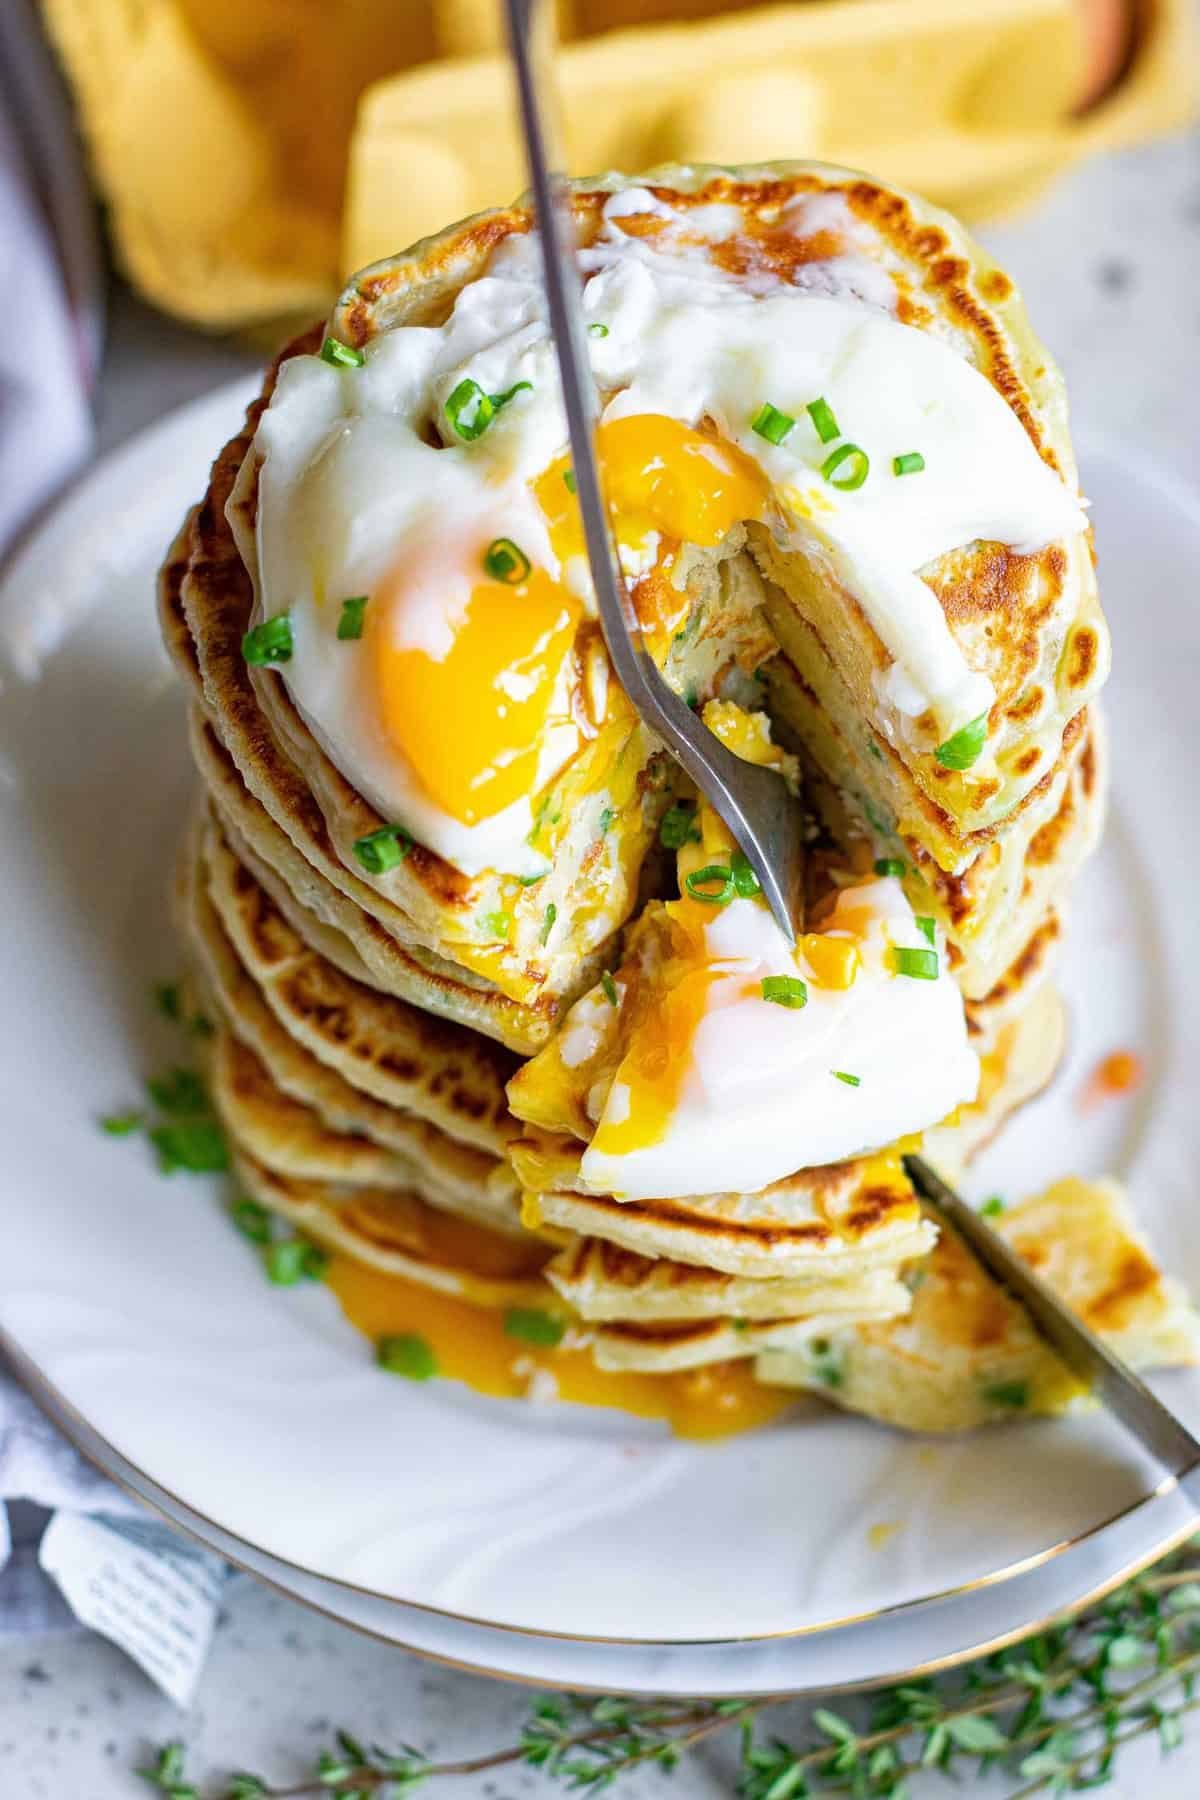 Overhead view of a fork stabbing into a stack of pancakes.